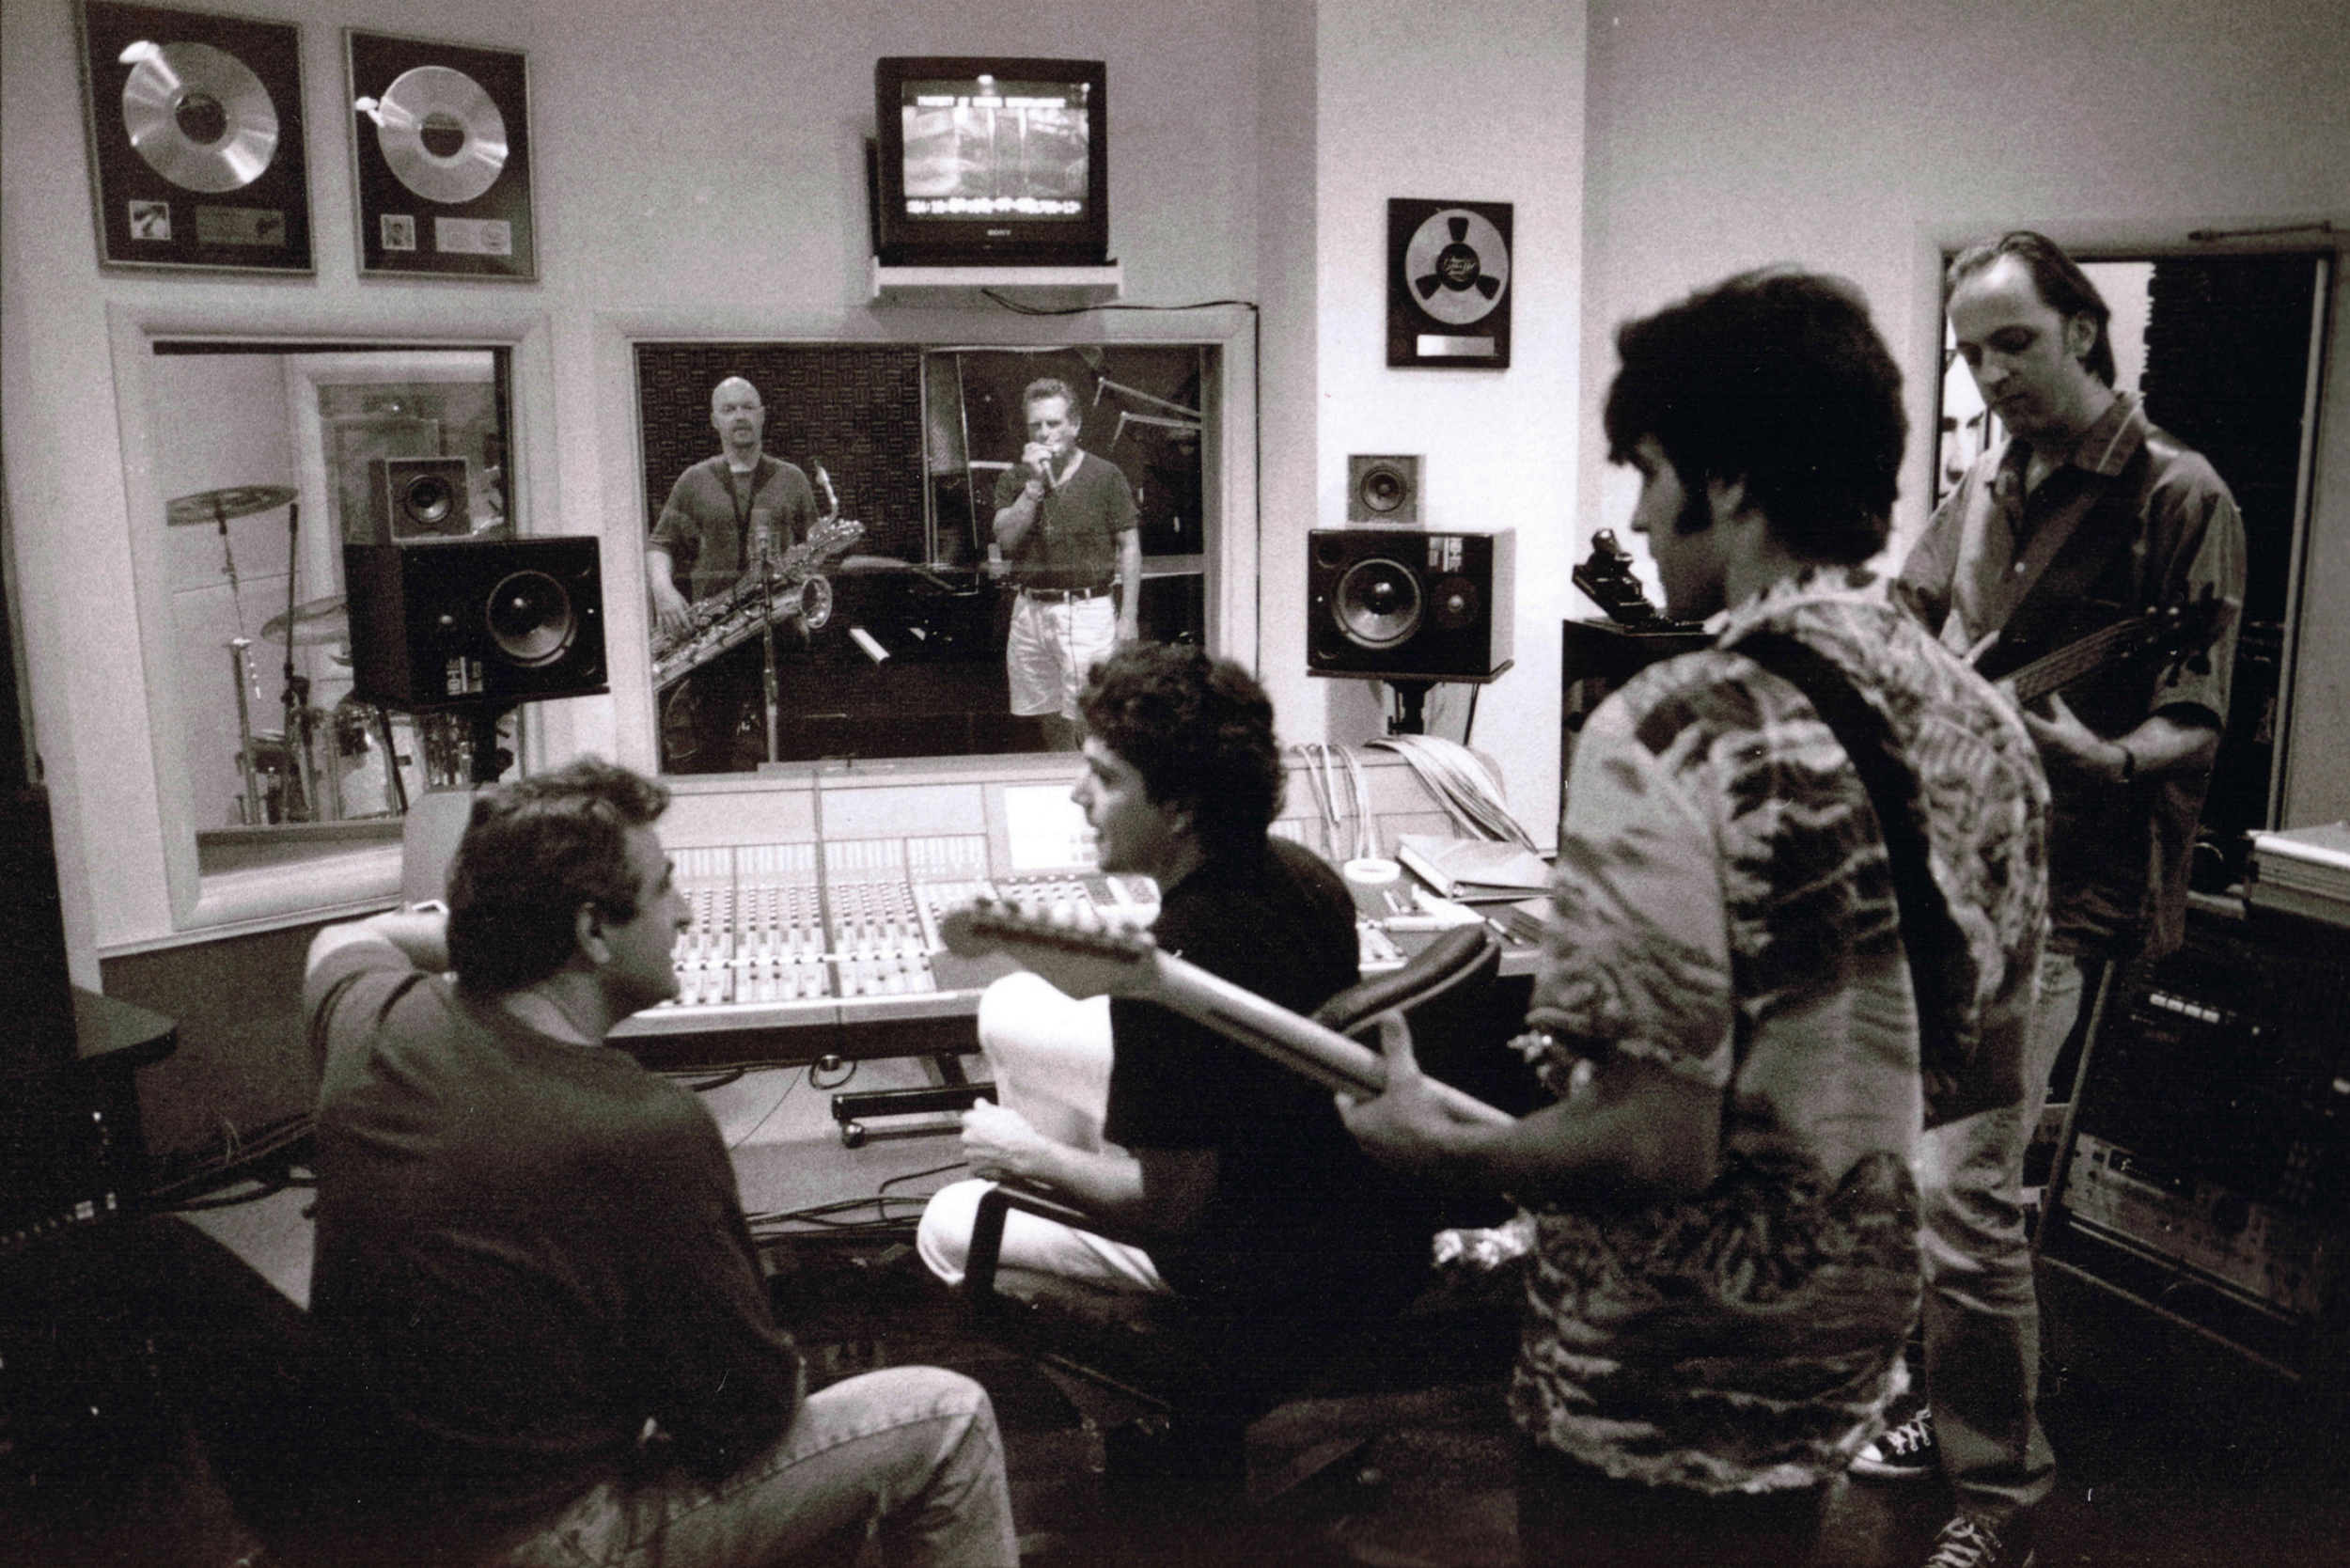 2 Days in the Valley Session - in the recording studio